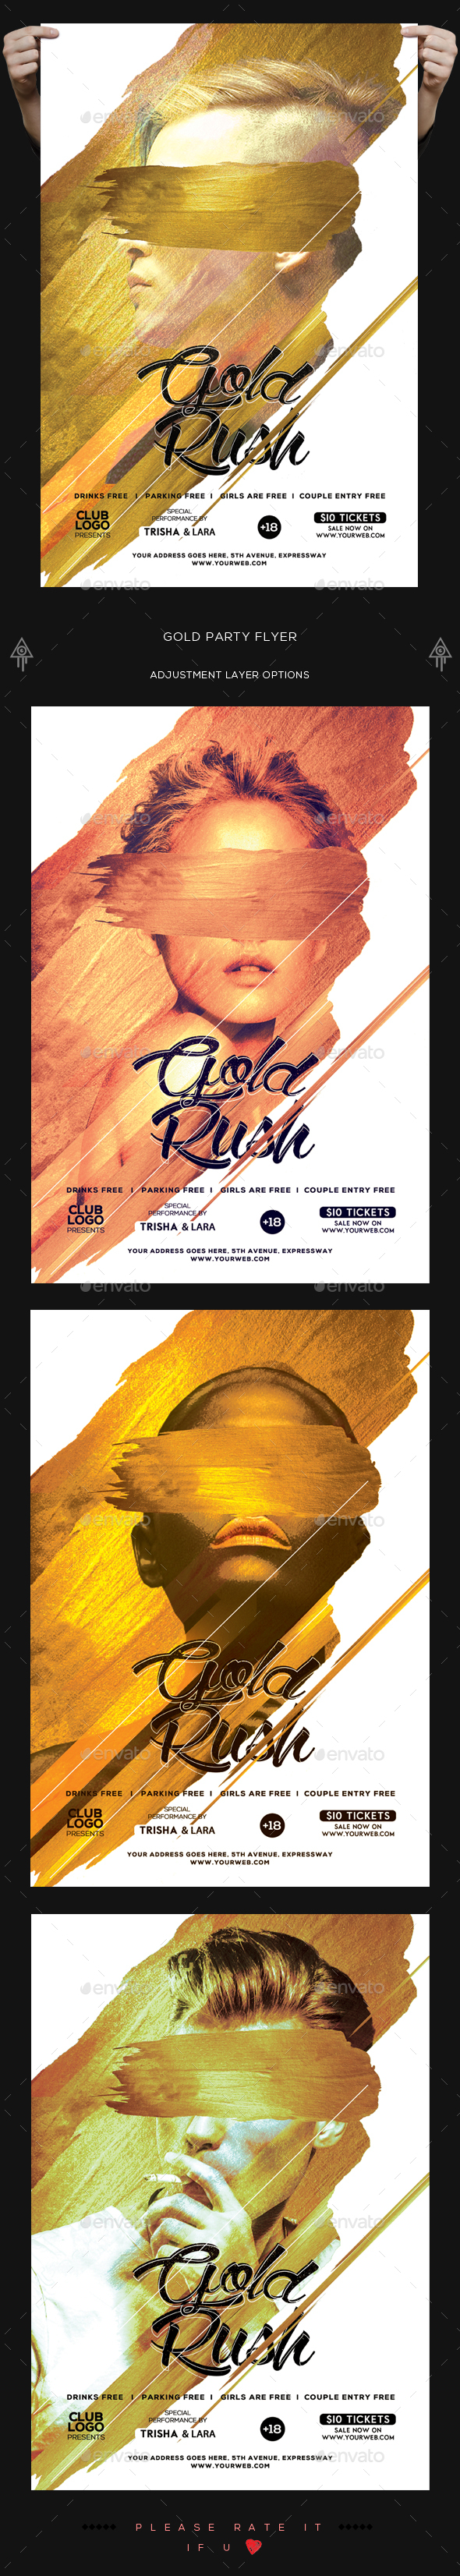 Gold Rush Flyer - Clubs & Parties Events